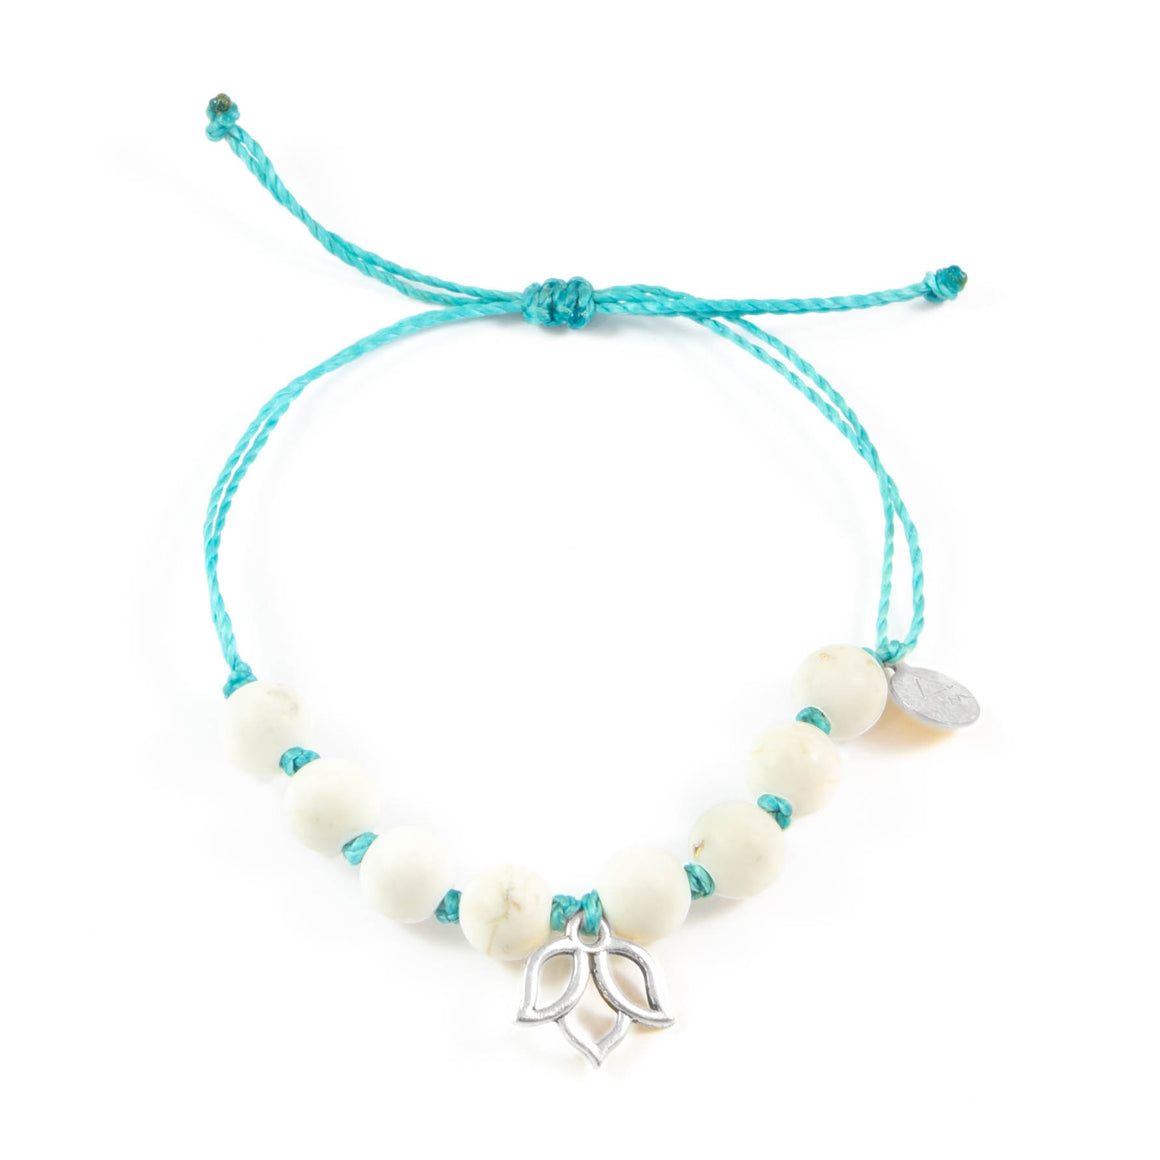 Teal & White Turquoise Lotus Flower Bracelet in Silver